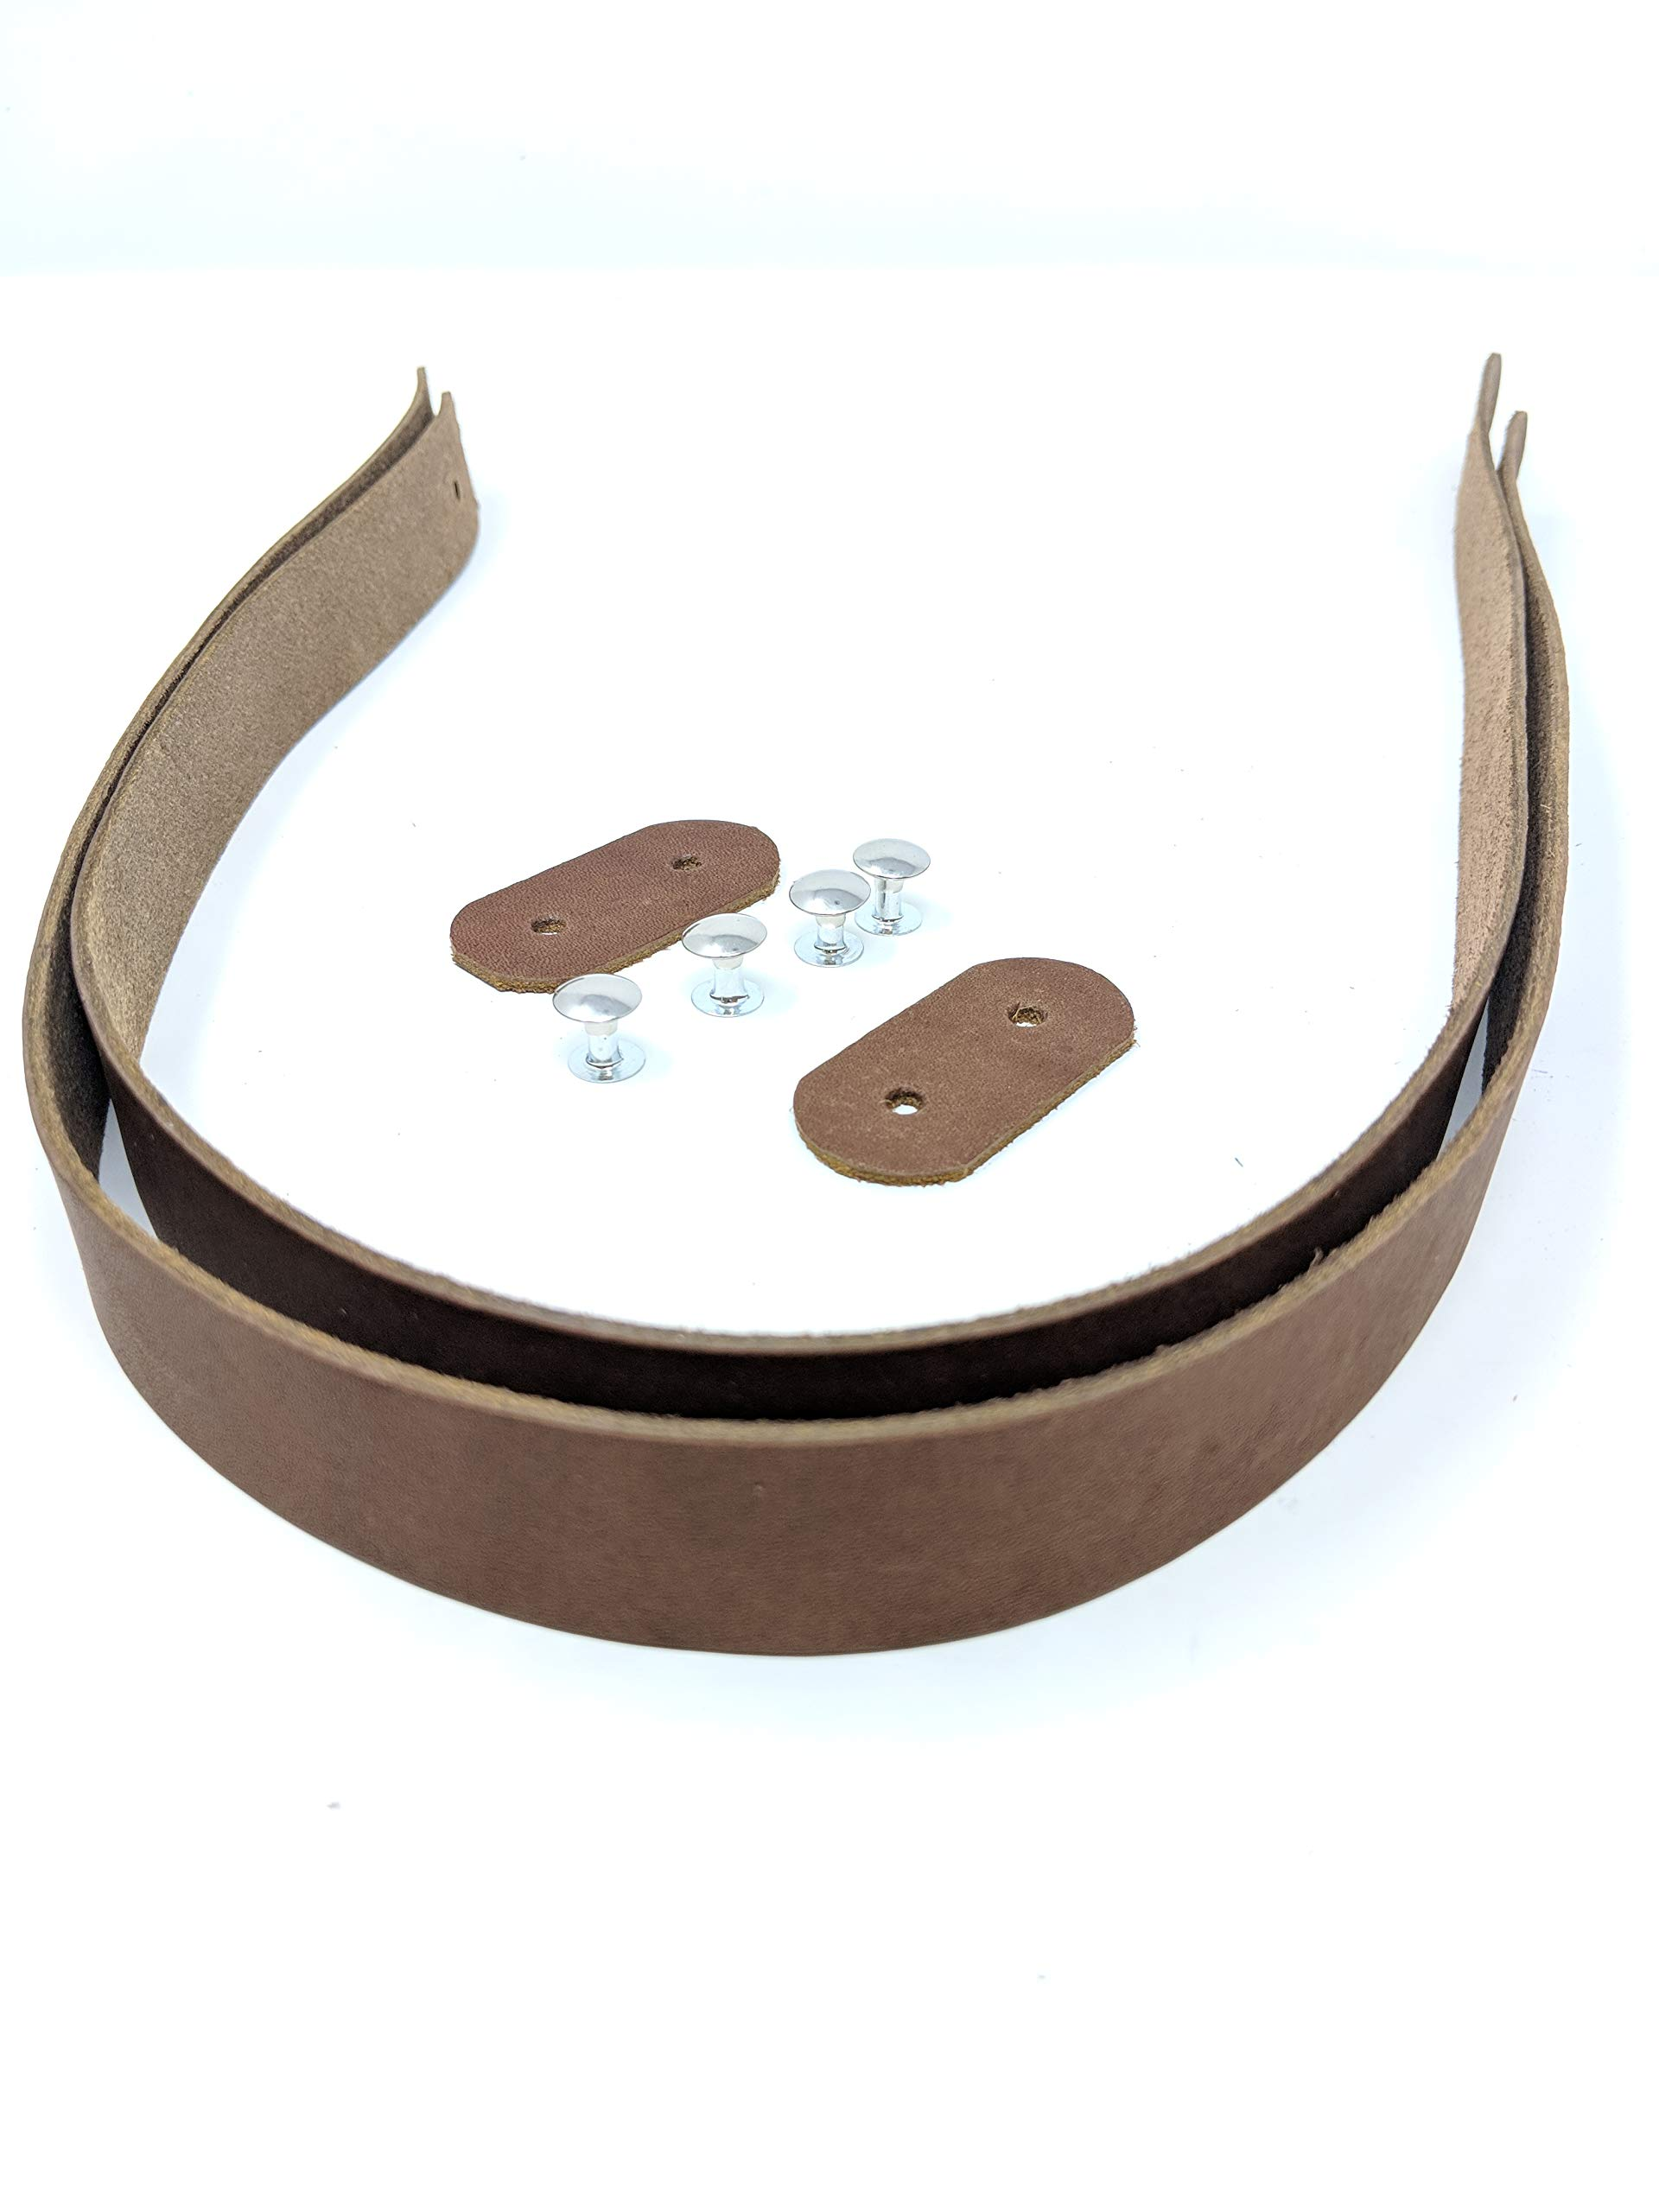 Leather Handles for Purses Or Tote Bags | Replacement Strap | 2 Strips are 27 Inches Long and 1 inch Wide 4 to 5 oz.-1/16 Thick (Medium Brown) by TOFL